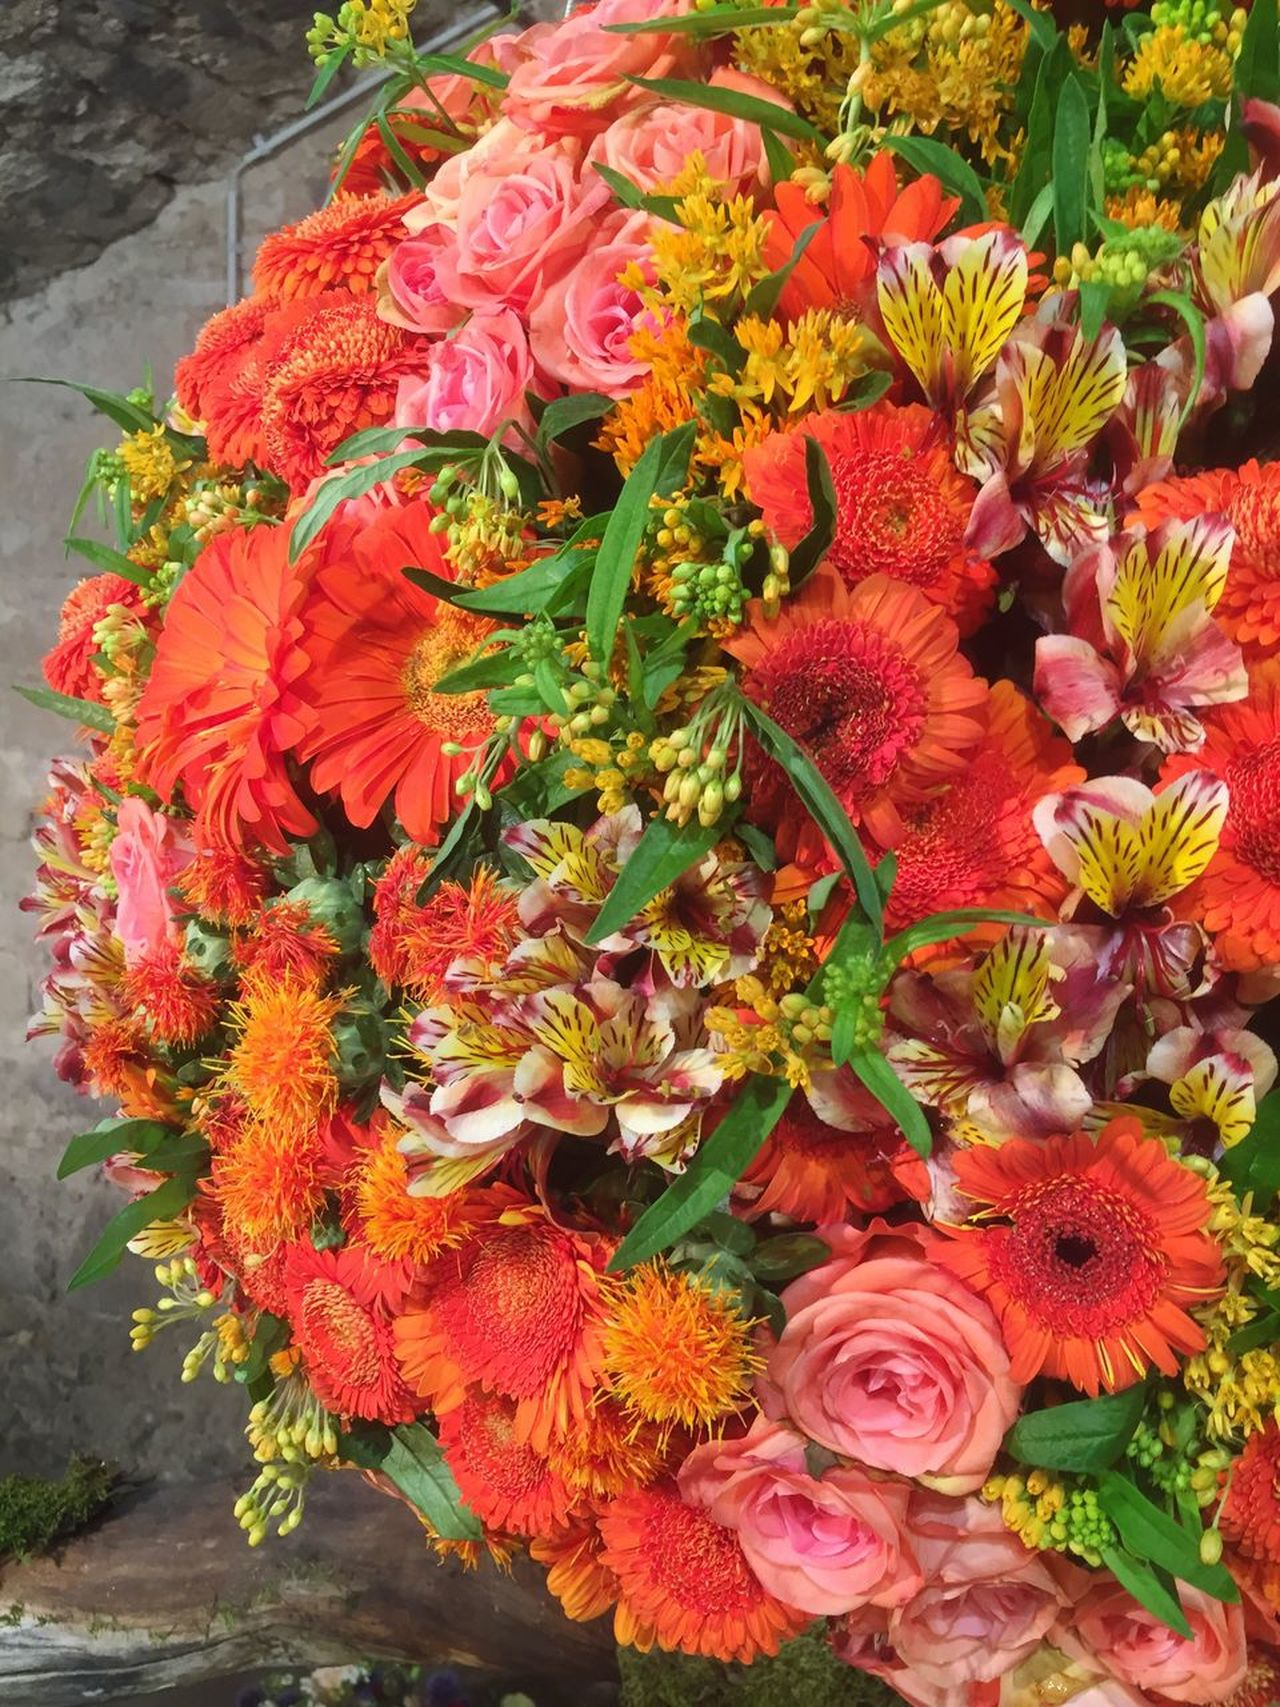 Orange flower bouquet Flower Fragility Freshness Beauty In Nature Flower Head Petal Nature Bouquet Growth No People High Angle View Rose - Flower Plant Day Flower Shop Flower Market Outdoors Multi Colored Blooming Close-up Valentine's Day